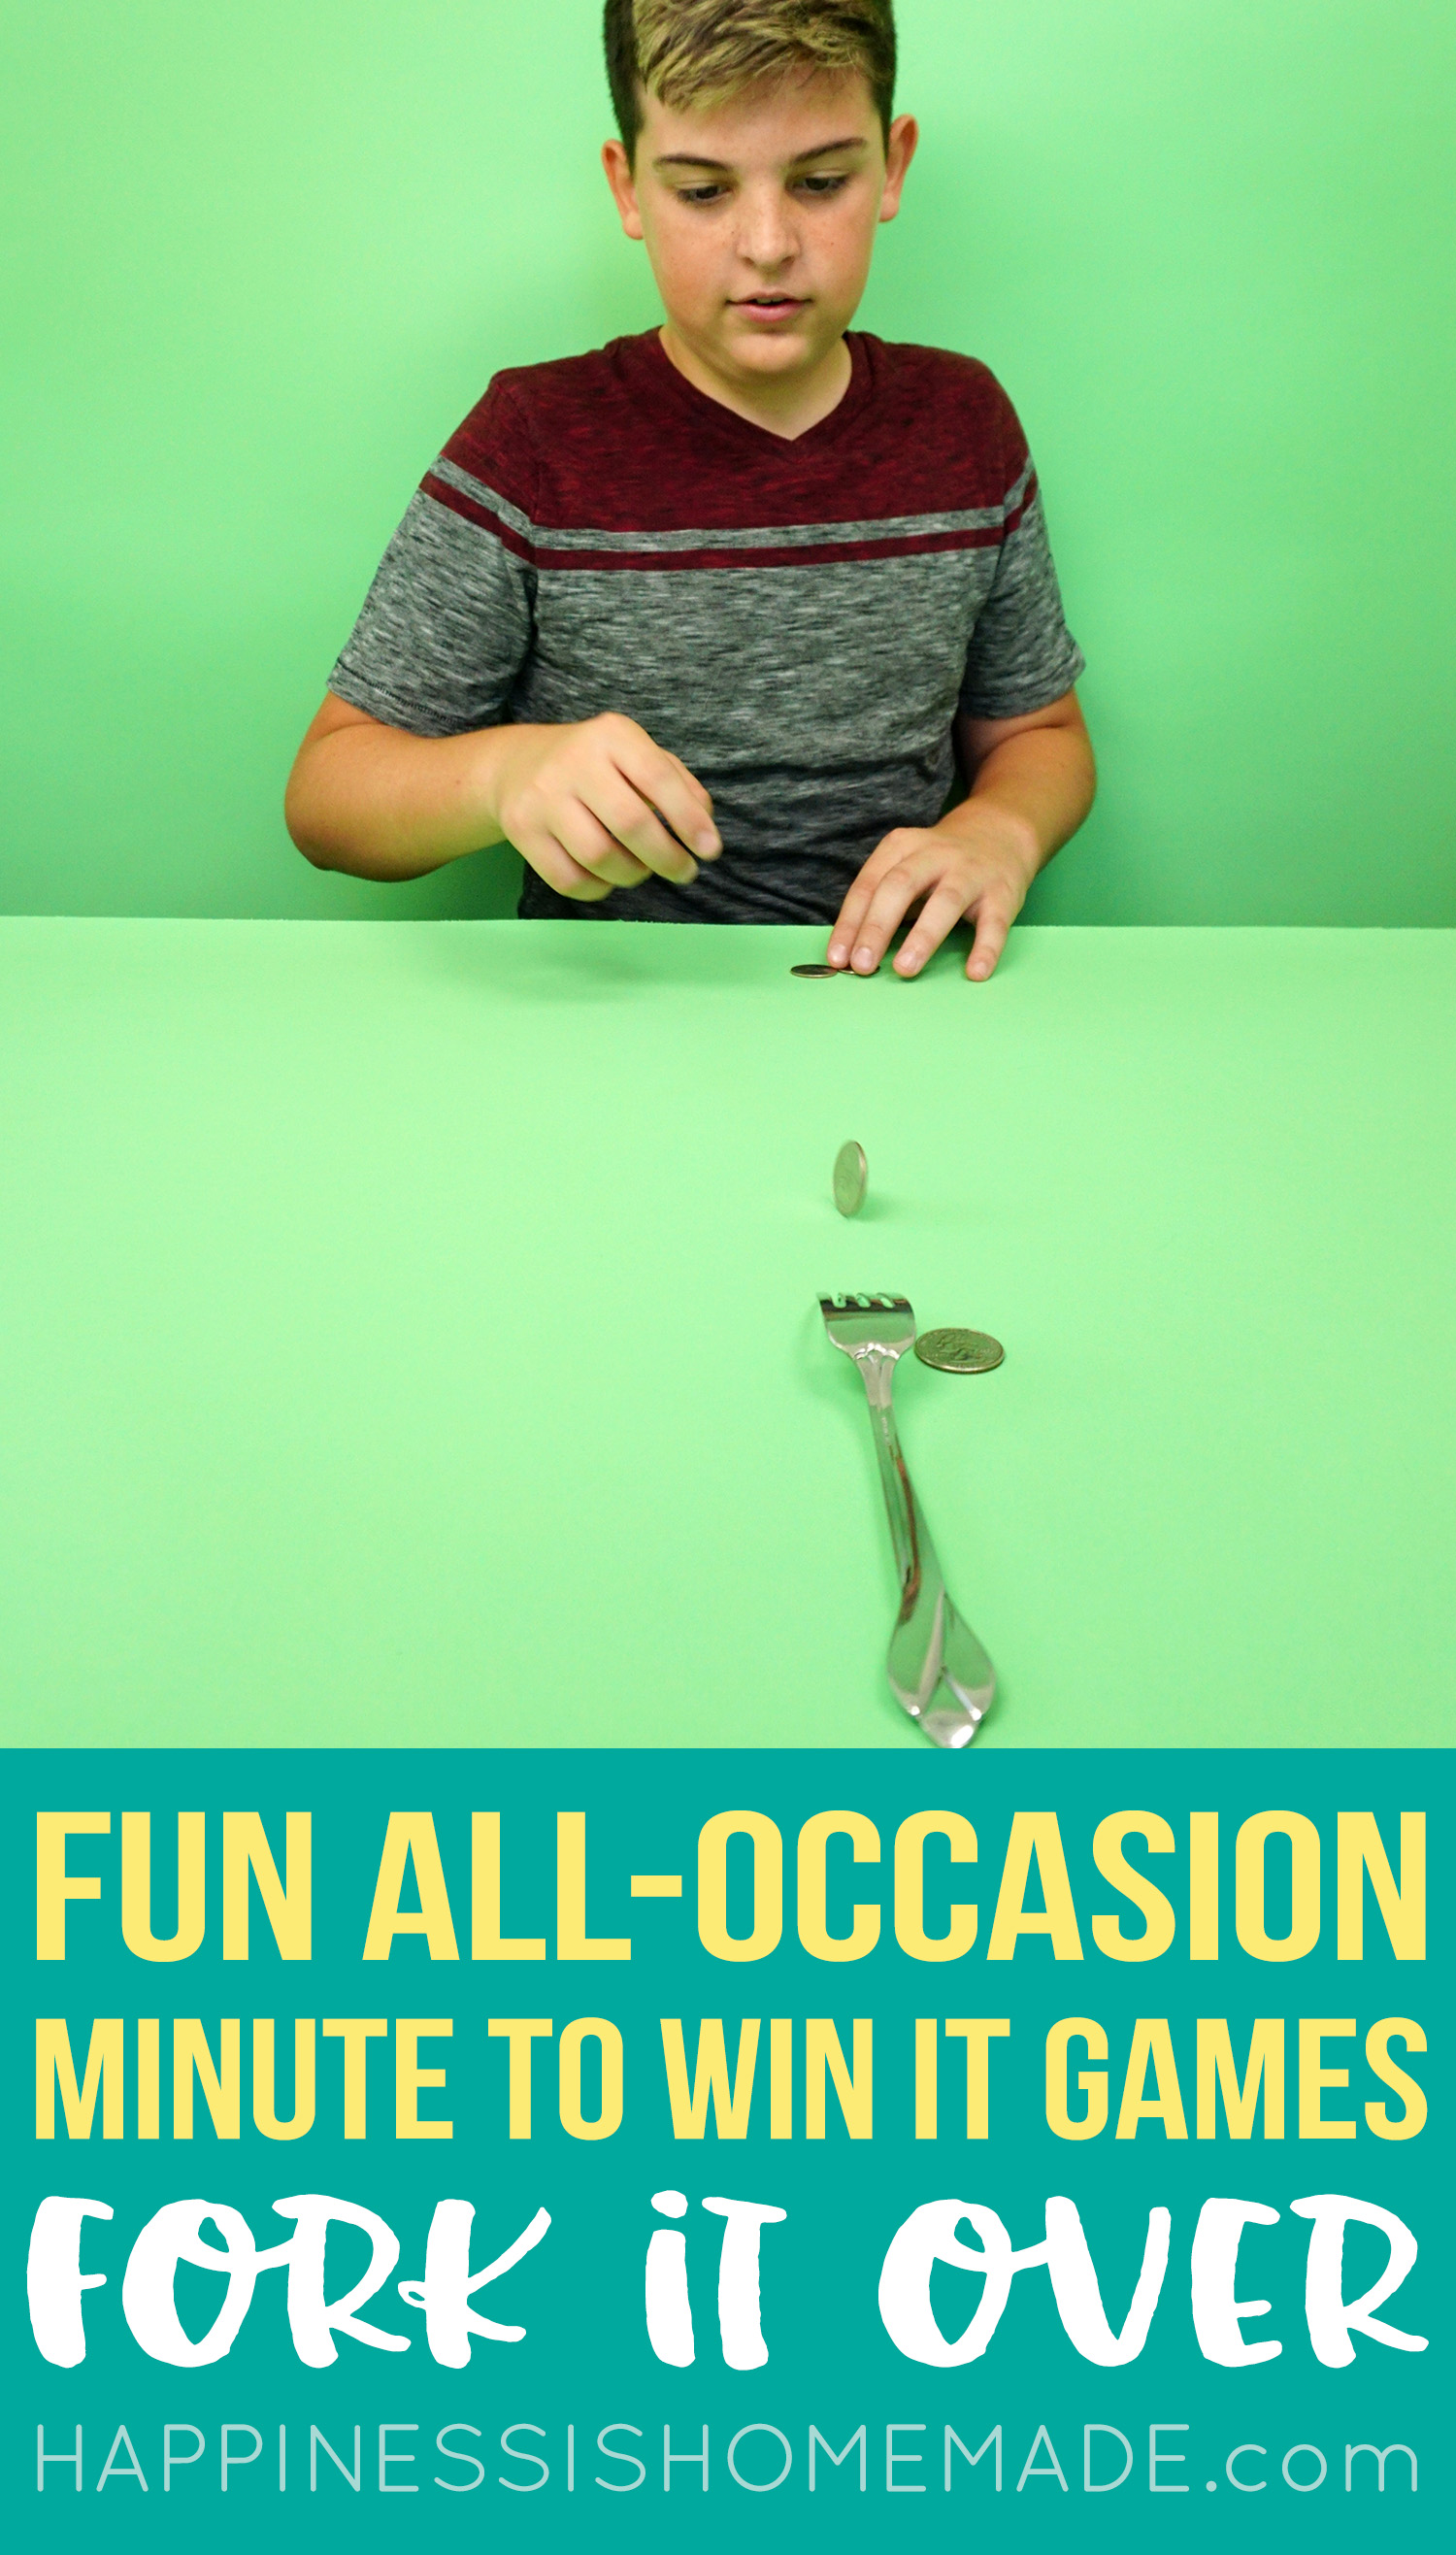 Minute to Win It Games - Fork it Over